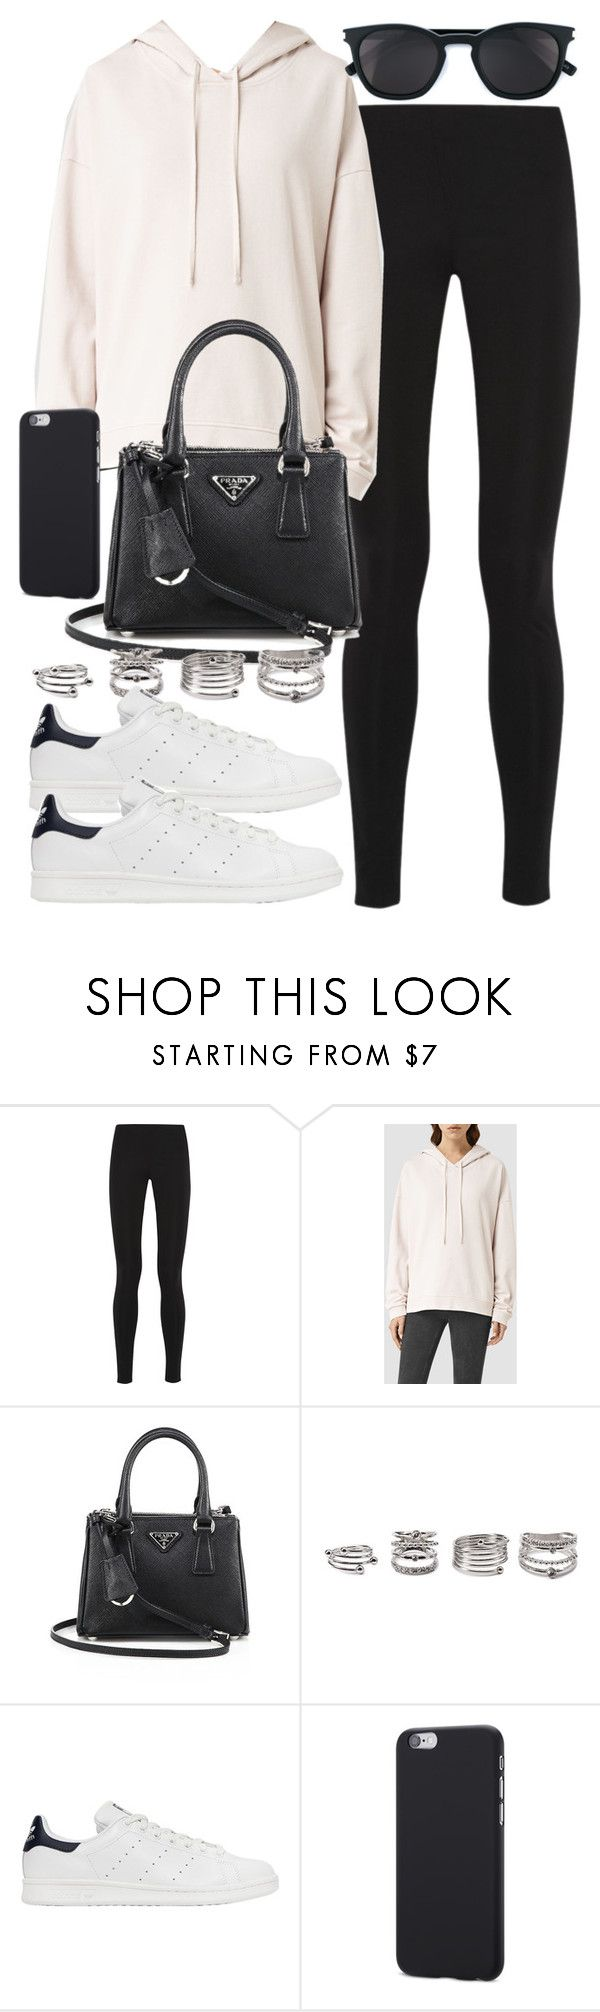 """Style #11399"" by vany-alvarado ❤ liked on Polyvore featuring Balenciaga, AllSaints, Prada, Forever 21, adidas Originals and Yves Saint Laurent"